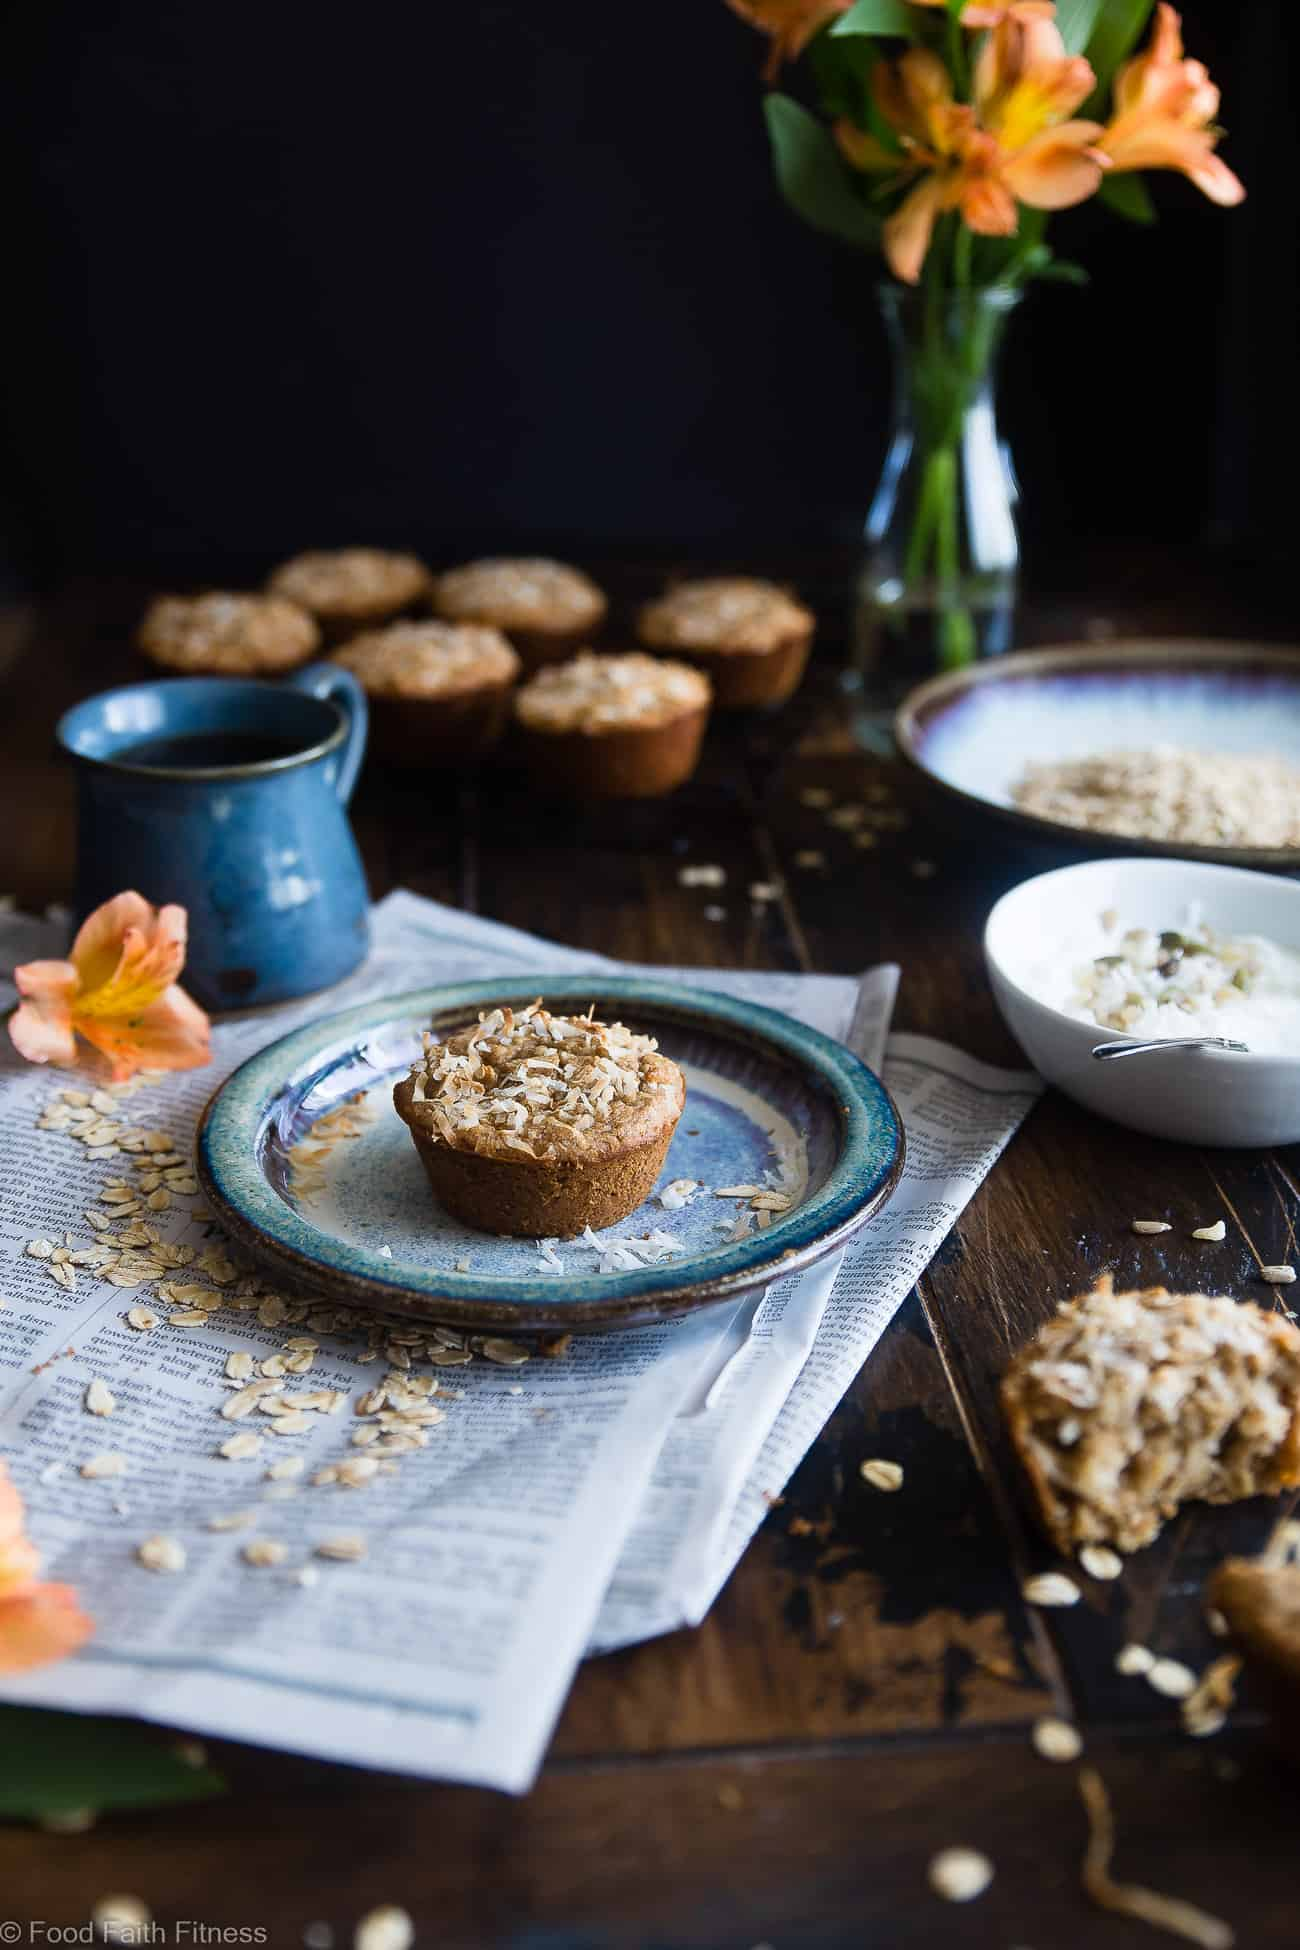 Flourless Oatmeal Applesauce Almond Butter Muffins - These healthy, dairy free muffins are made with simple, wholesome ingredients like oatmeal and almond butter and topped with coconut! They use applesauce instead of oil to keep them SO moist! | #Foodfaithfitness | #Glutenfree #Healthy #Almondbutter #Coconut #Muffins